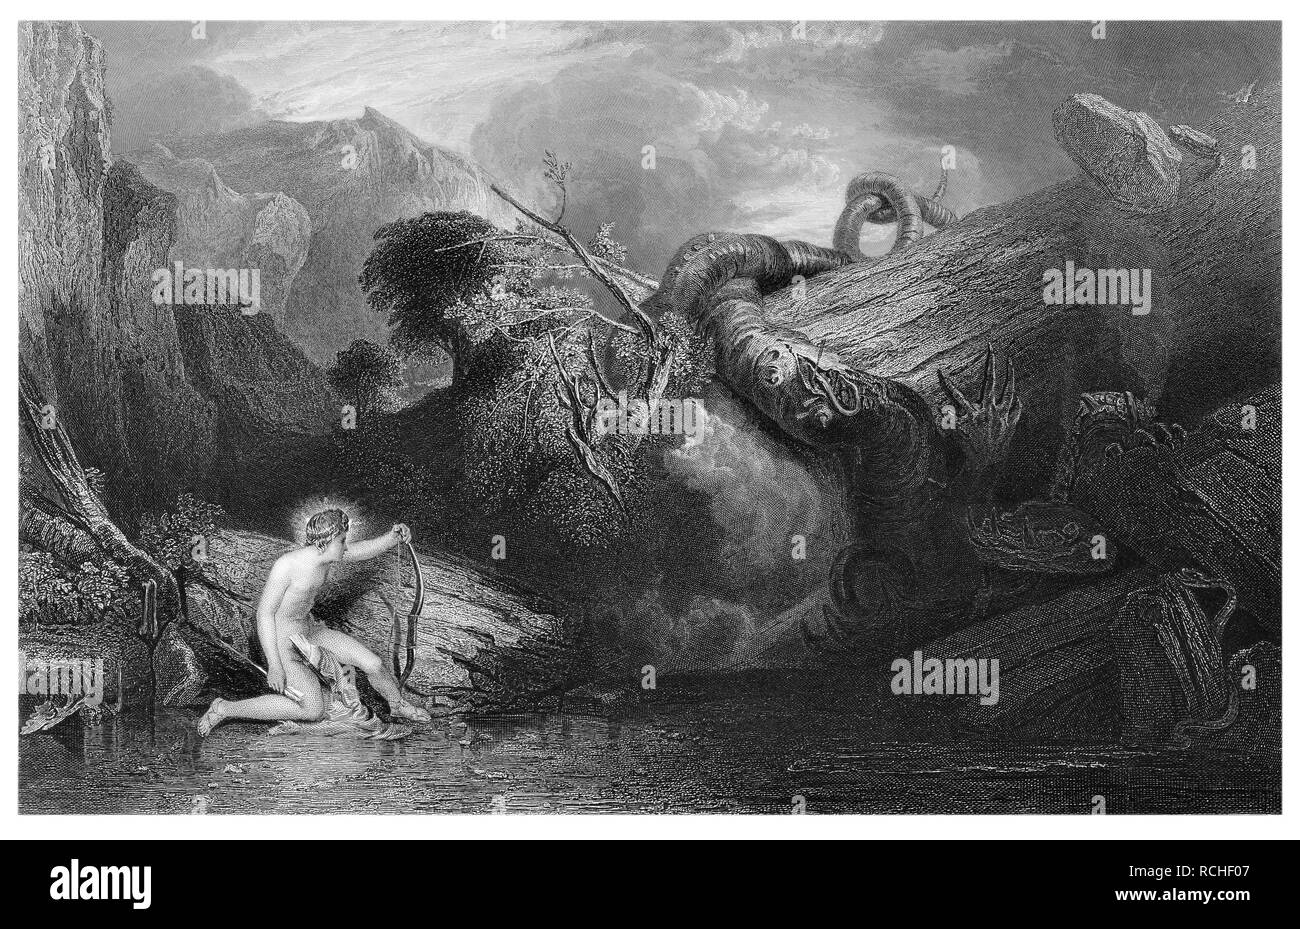 J.M.W Turner Apollo killing the python engraved by L.Stocks - Stock Image